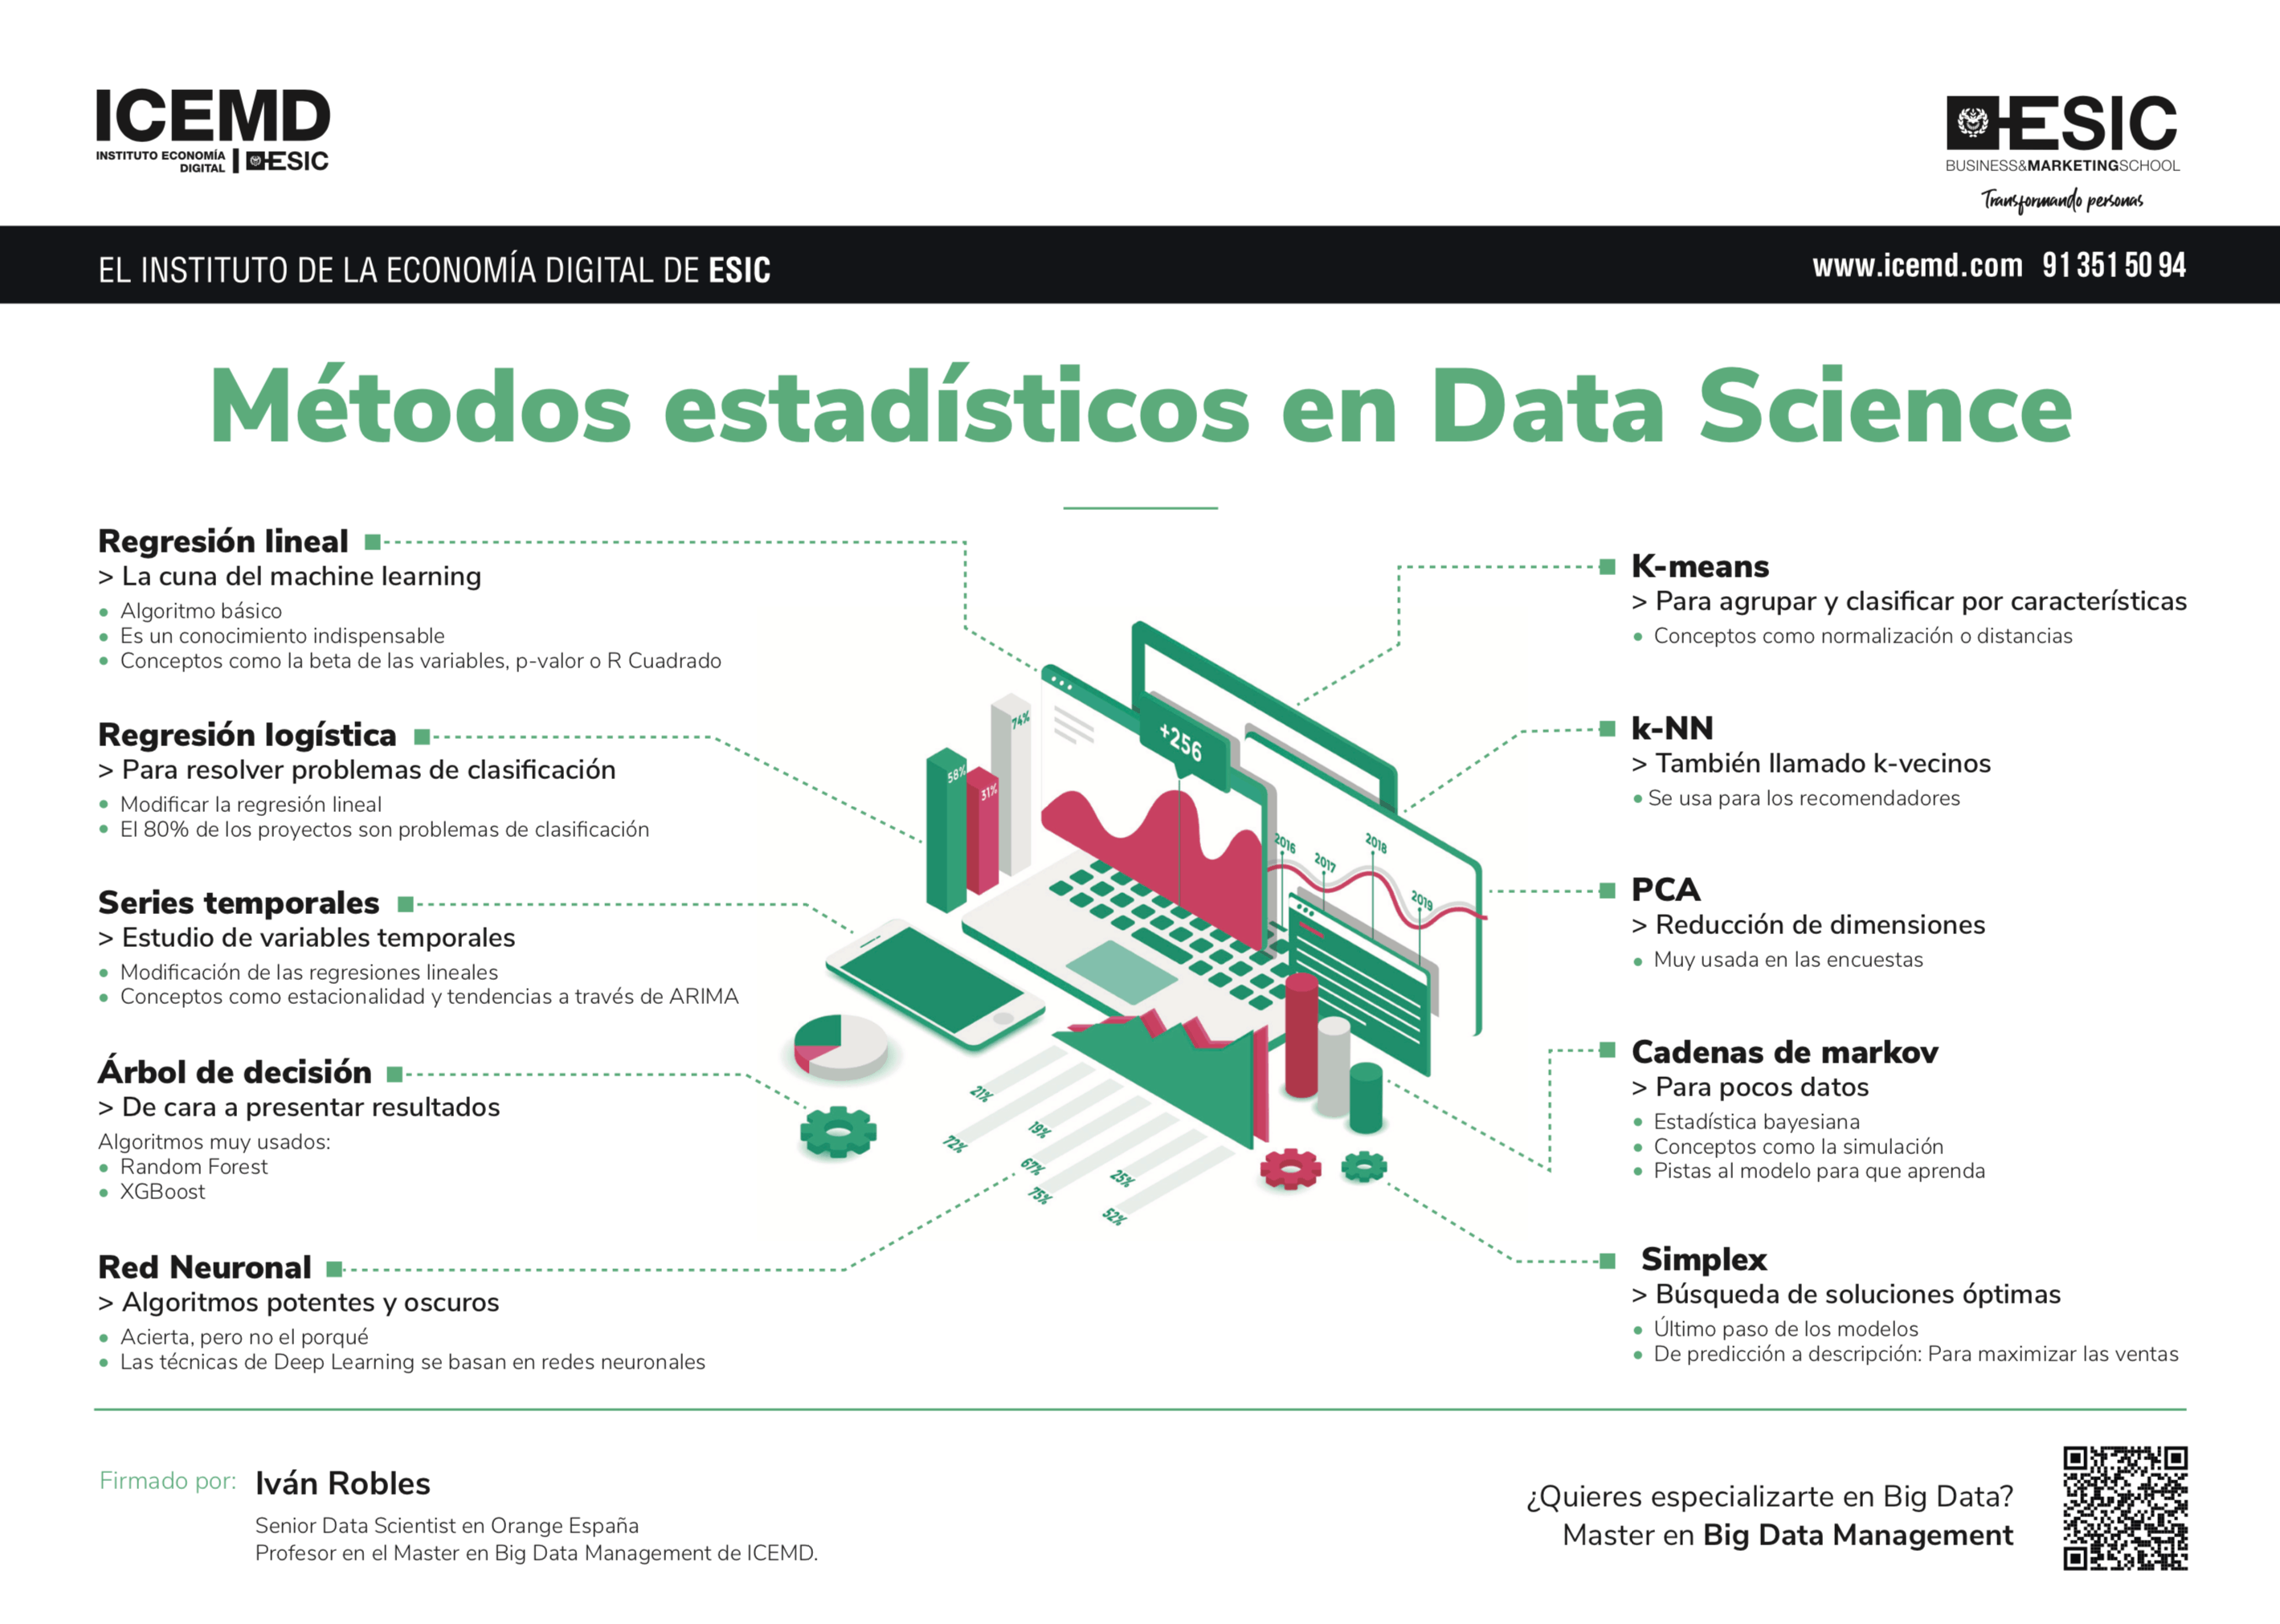 metodos estadisticos data science